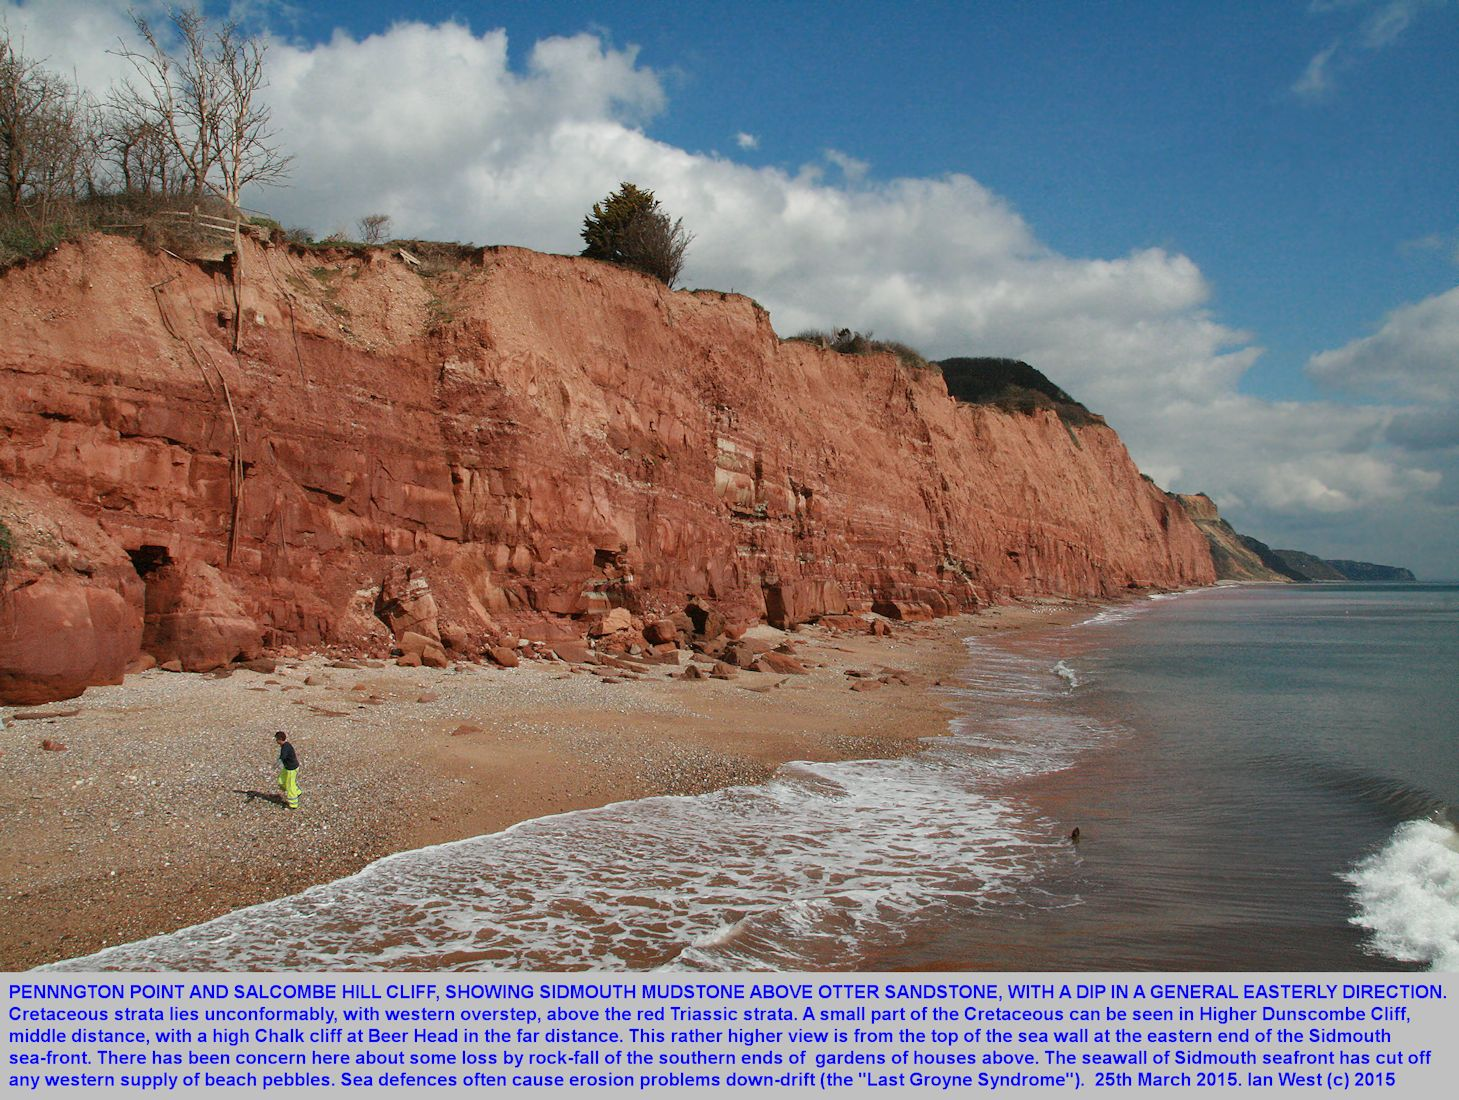 A view from the sea-wall, partly looking down, of the Otter Sandstone and Mercia Mudstone cliffs at Pennington Point, east of Sidmouth, Devon, 25th March 2015